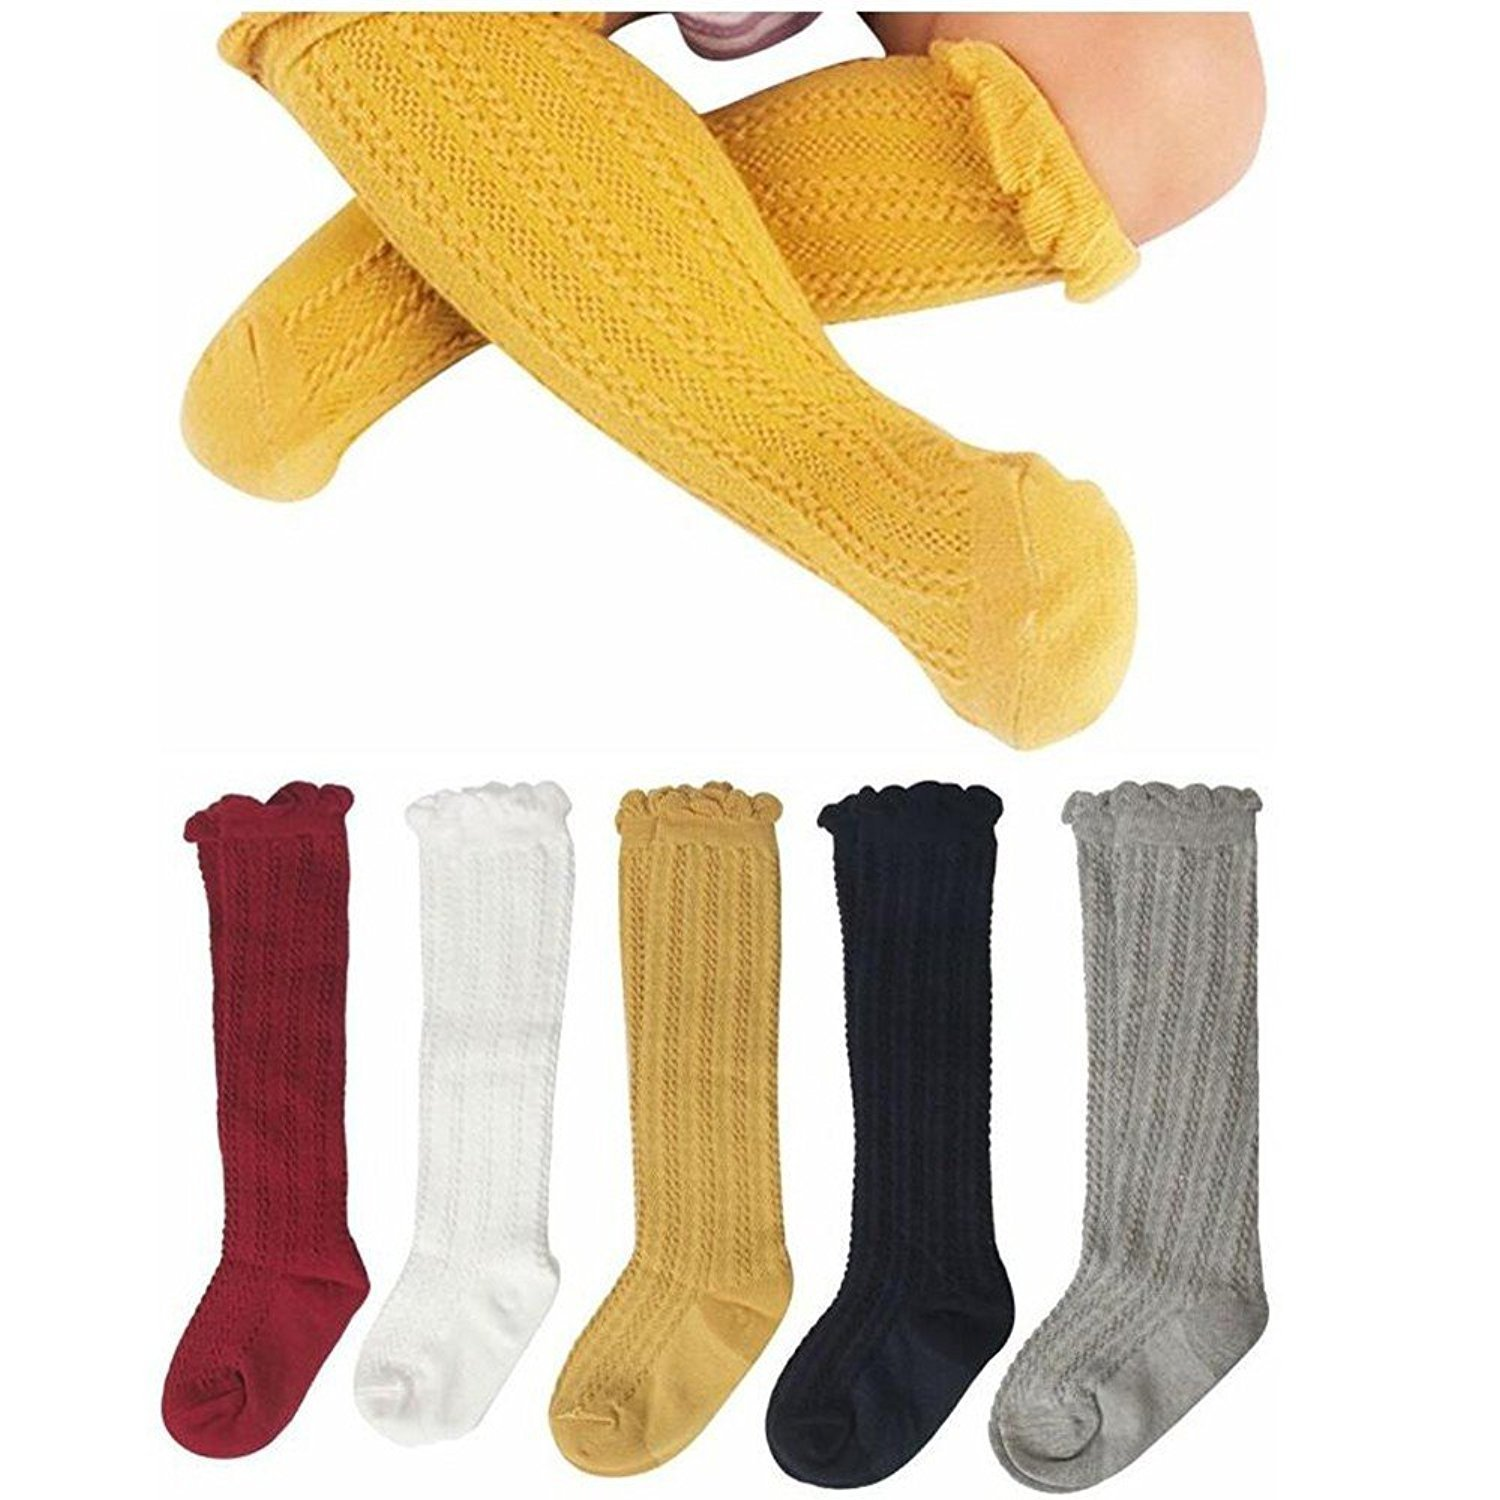 Gellwhu Cable-Knit Knee High Cotton Socks For Newborn Baby Girls Boys Toddlers 5- Pack (0-12 Months)